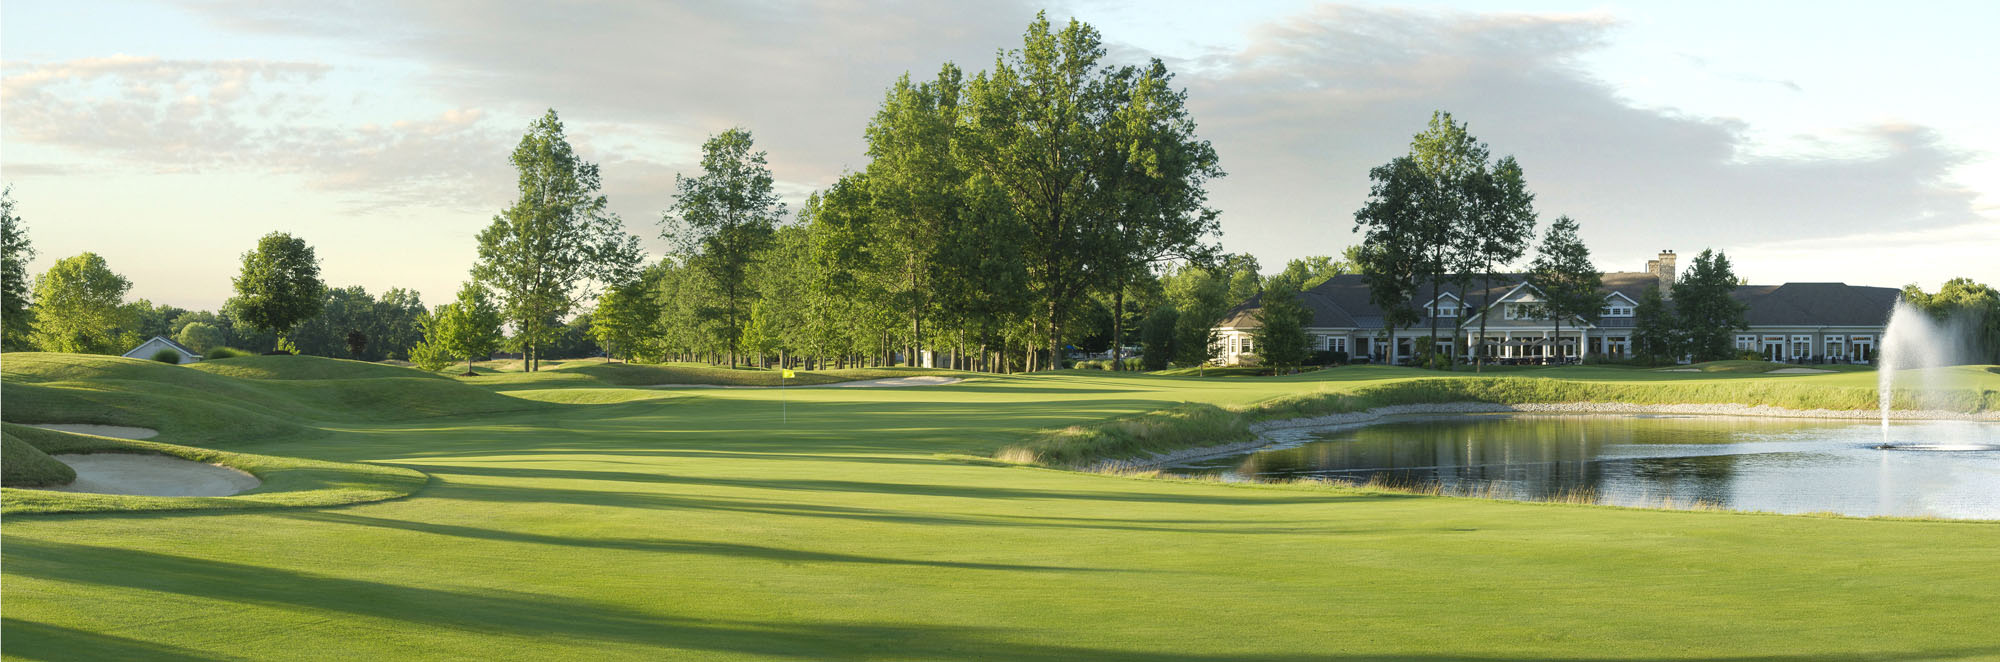 Golf Course Image - Jefferson Country Club No. 18